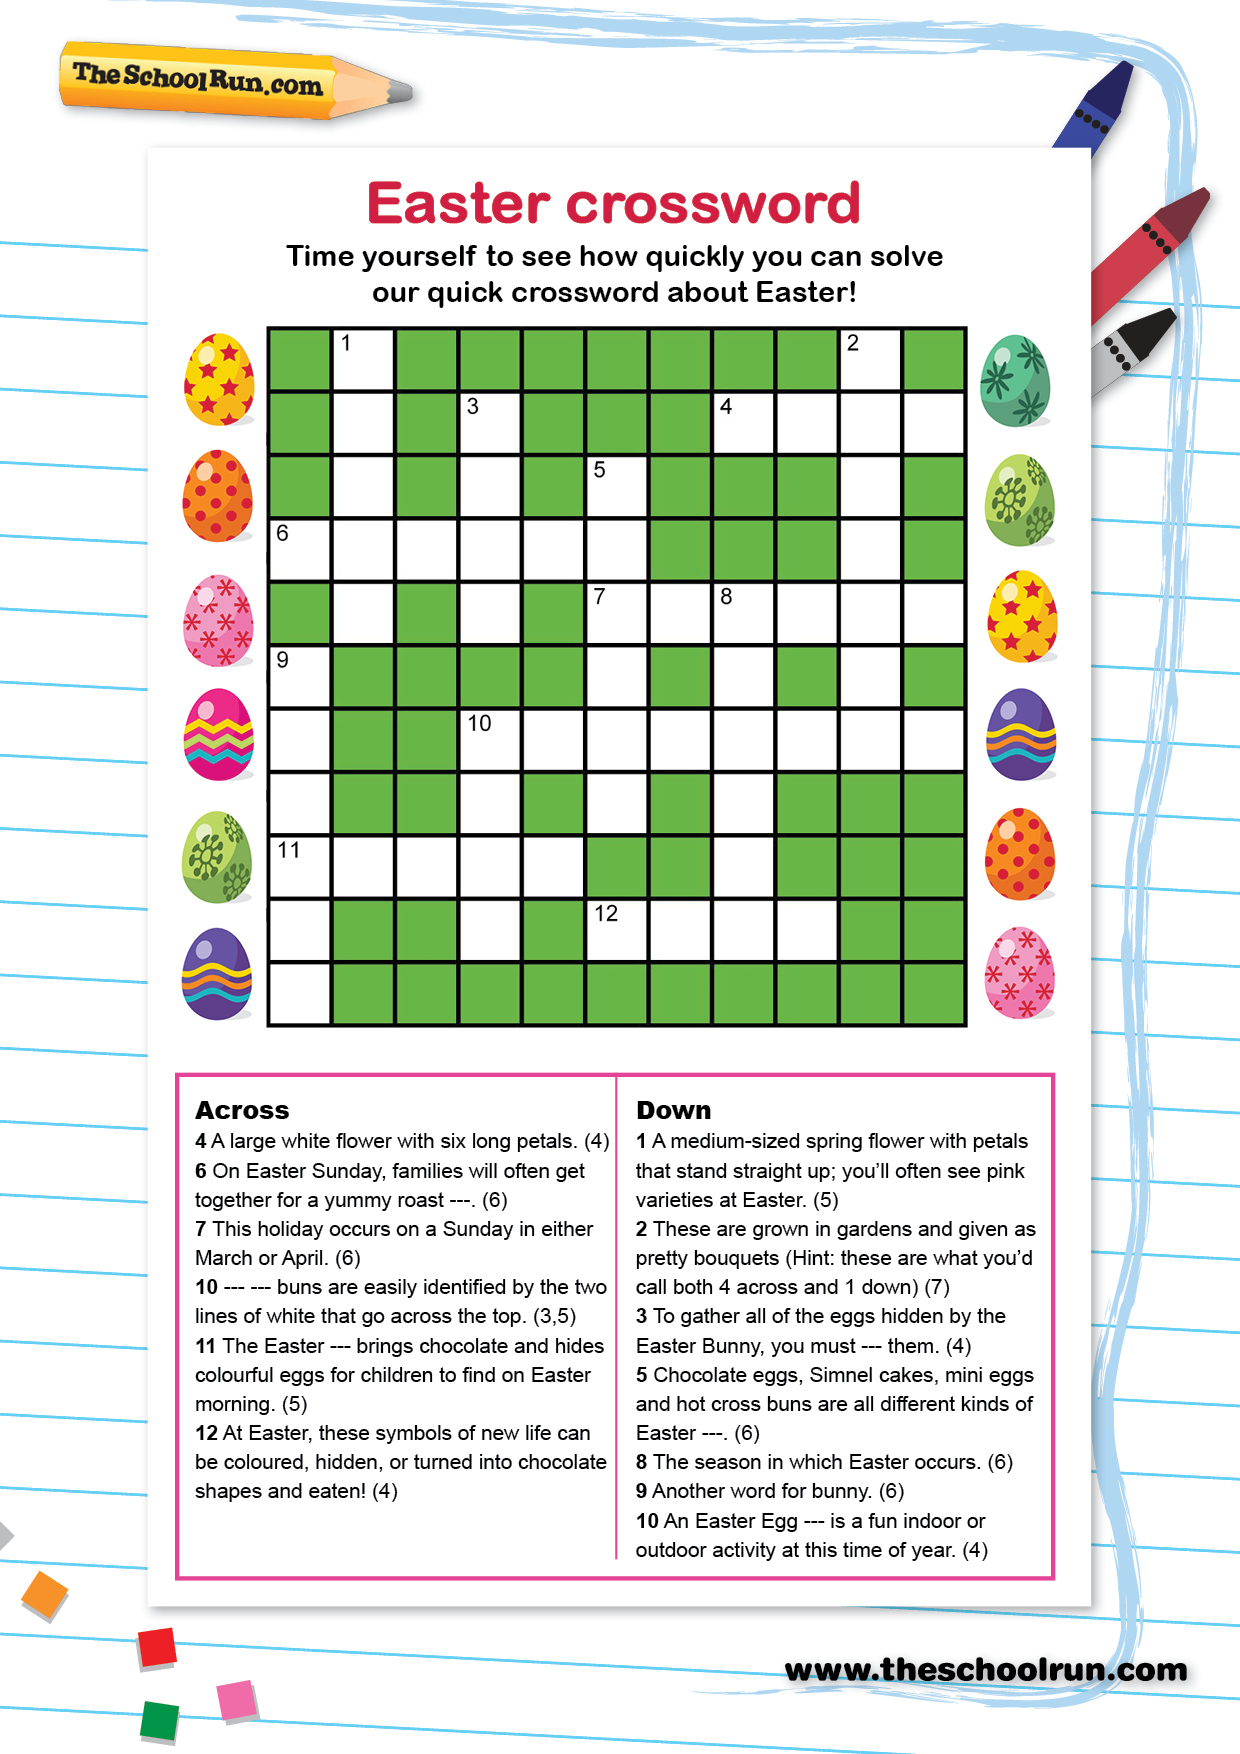 Word Puzzles For Primary School Children | Theschoolrun - Printable Word Puzzles For 7 Year Olds